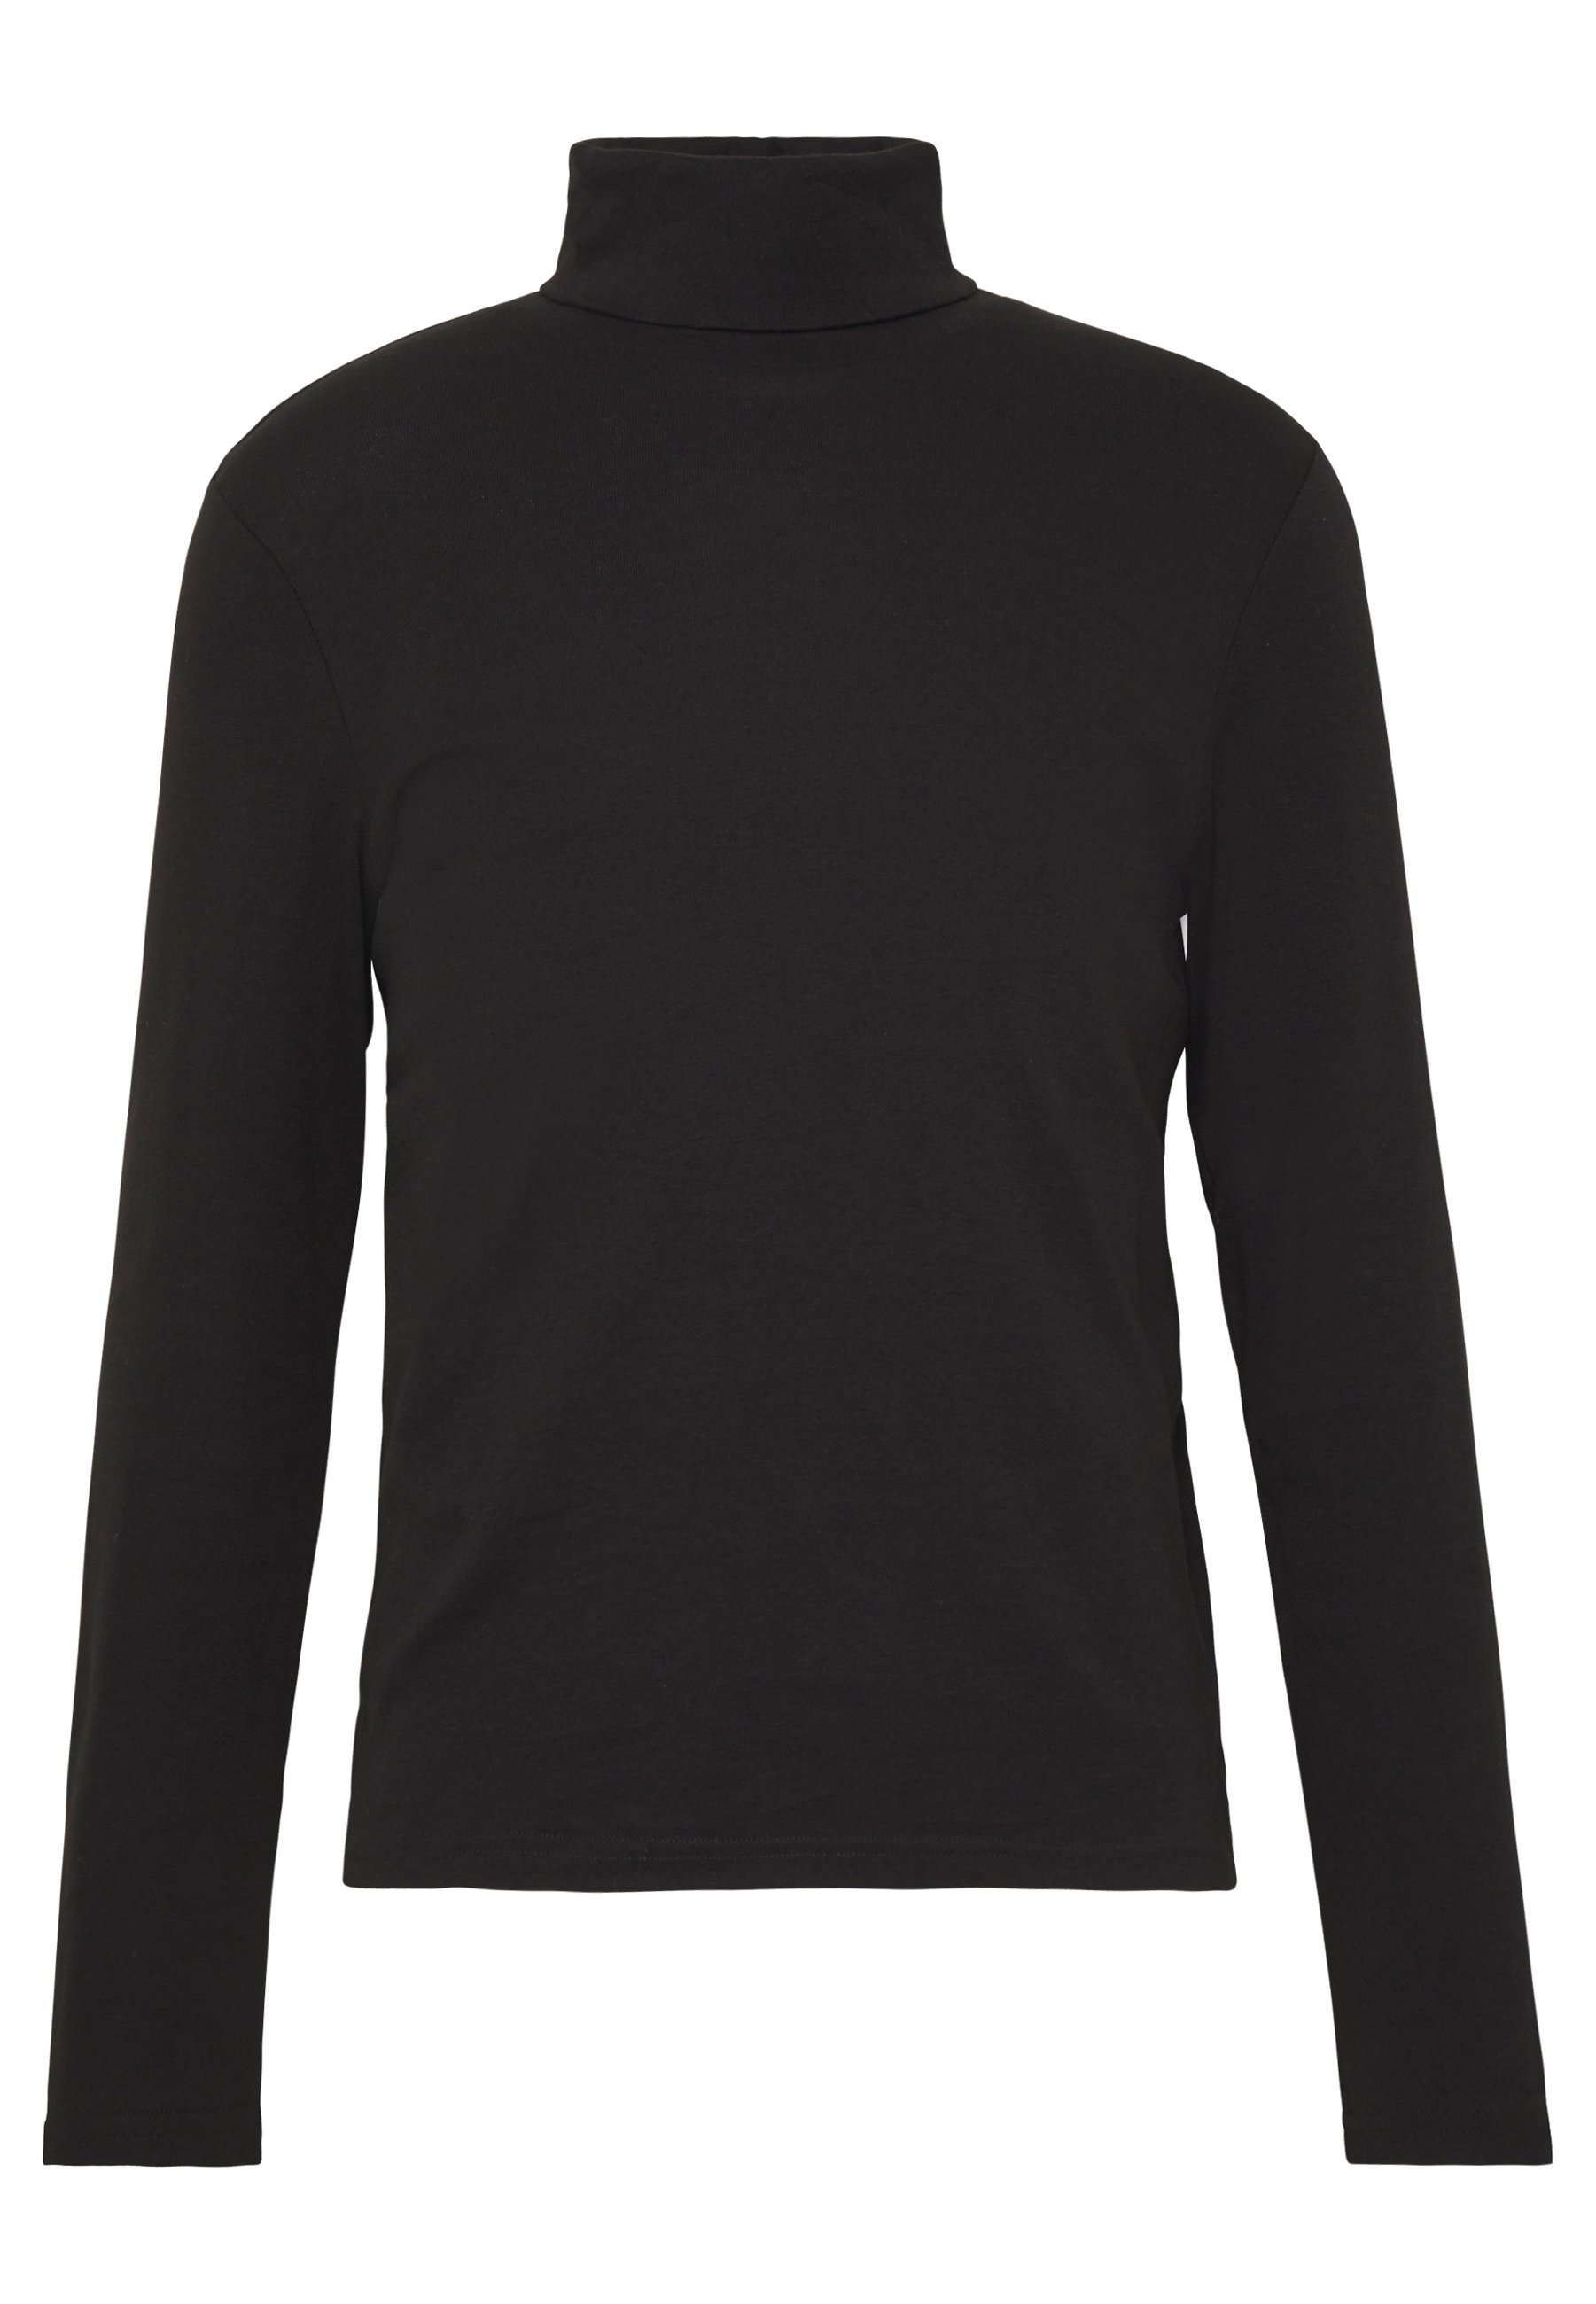 Tom Tailor Roll Neck Longlseeve - T-shirt À Manches Longues Black